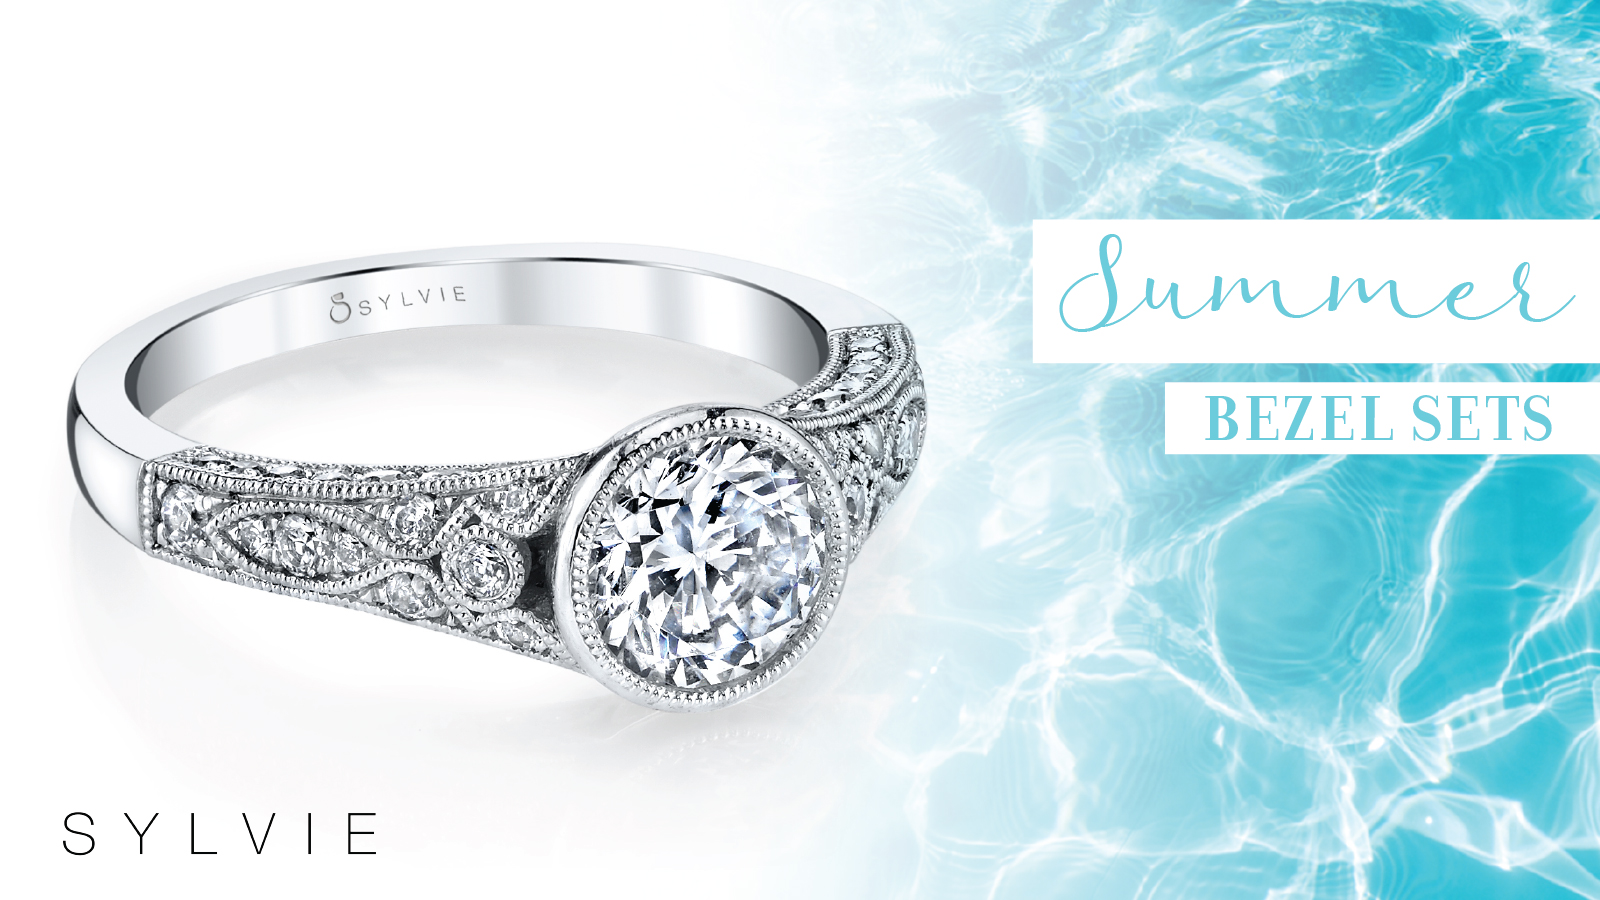 Summer Bezel Sets - Sylvie Collection